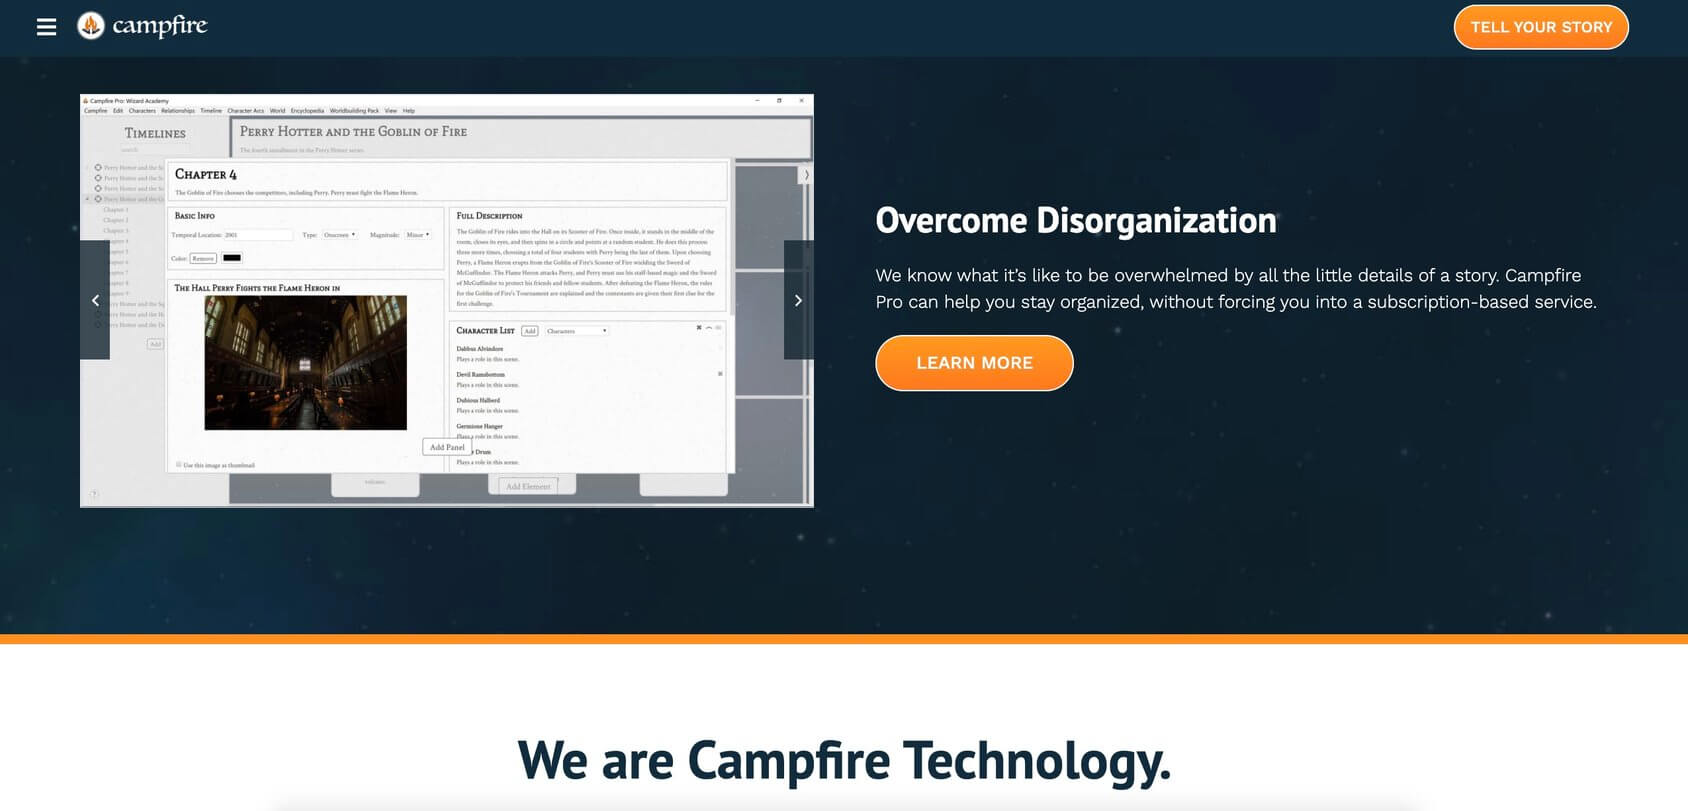 Campfire homepage